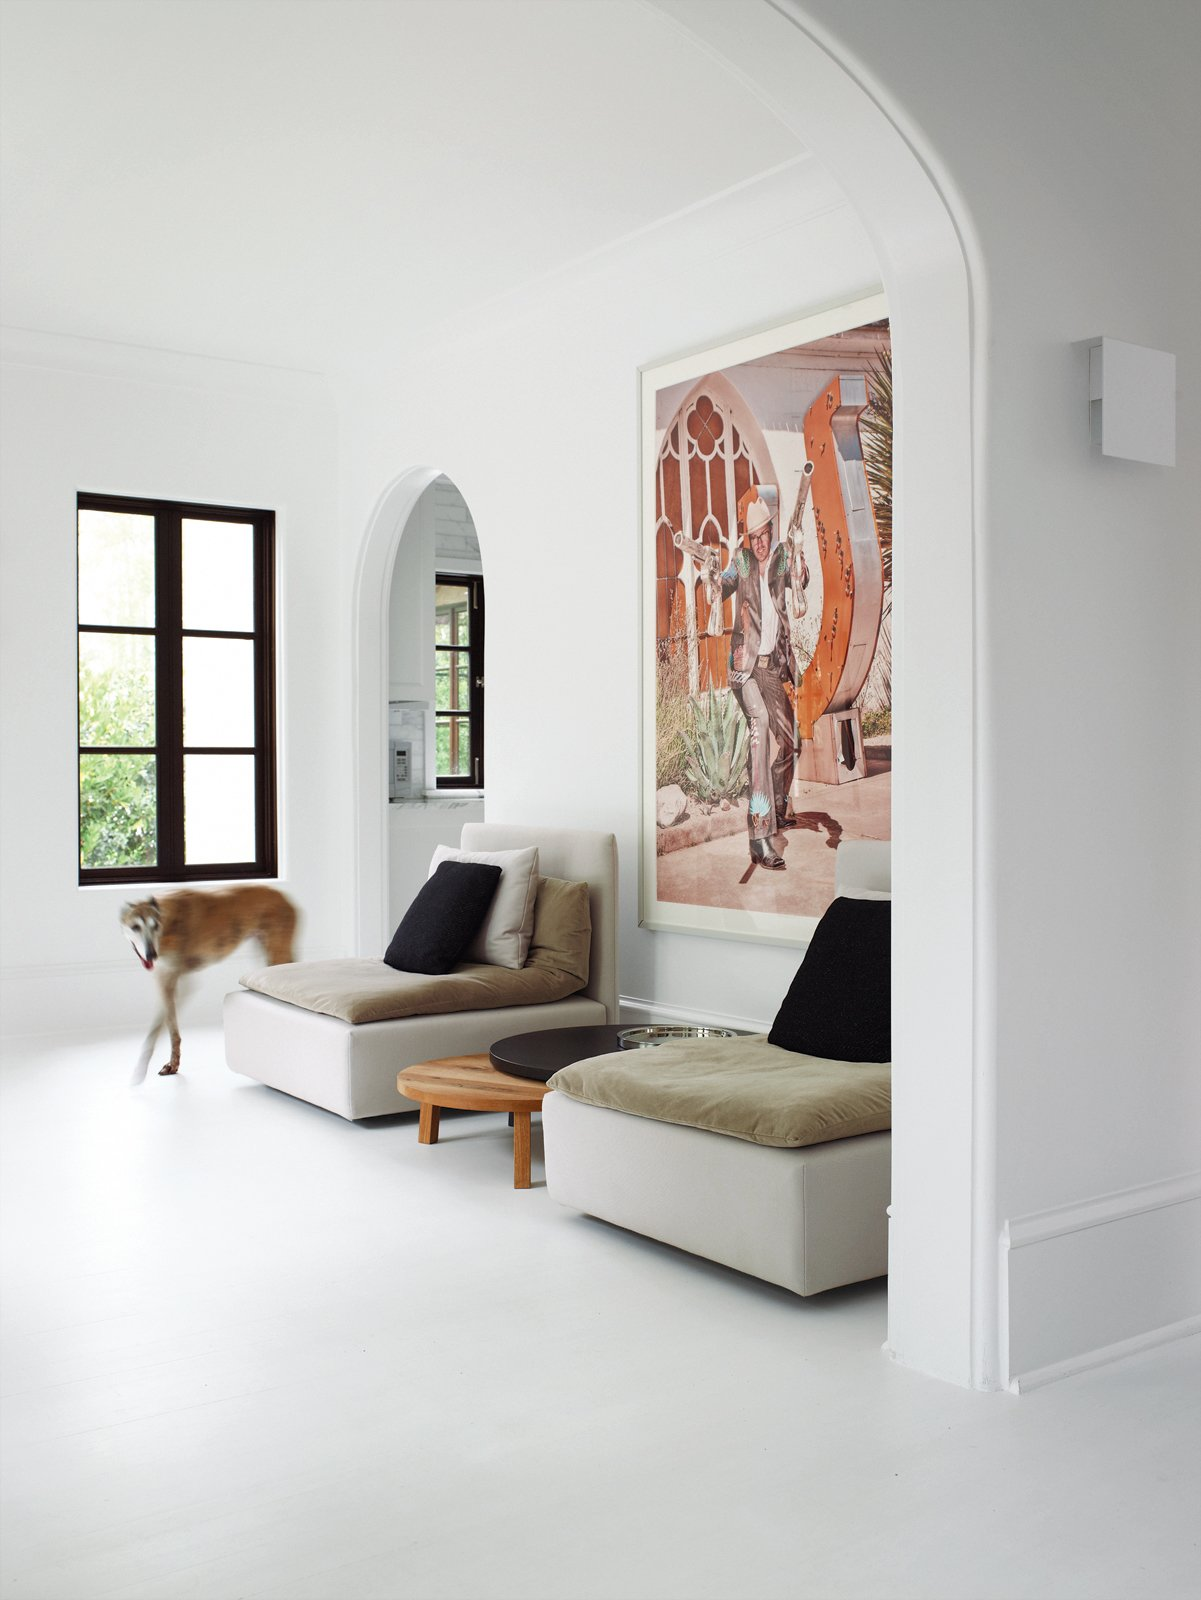 "Living Room, Chair, Coffee Tables, and Painted Wood Floor Two pieces from E15's Shiraz sofa flank   the company's wooden Leila side tables.   Hill chose to use flat paint in Benjamin Moore's Decorators White throughout the home   because it emphasizes the chalkiness of the plaster walls, making them ""look almost like slate."" The sconce shown in the foreground—David Chipperfield's Corrubedo design for   FontanaArte—gives off a soft glow and   replaces the dozens of paper-lampshade   wall fixtures the owners found in the house when they bought it. Stewart Cohen's   zany photograph of a gun-toting Marfa   resident encapsulates Barbara Hill's offbeat brand of decorating: bright and minimal,   yet darkly humorous.  Best Photos from A Designer Brings Her Bold Brand of Texas Modern to this Atlanta Family Home"